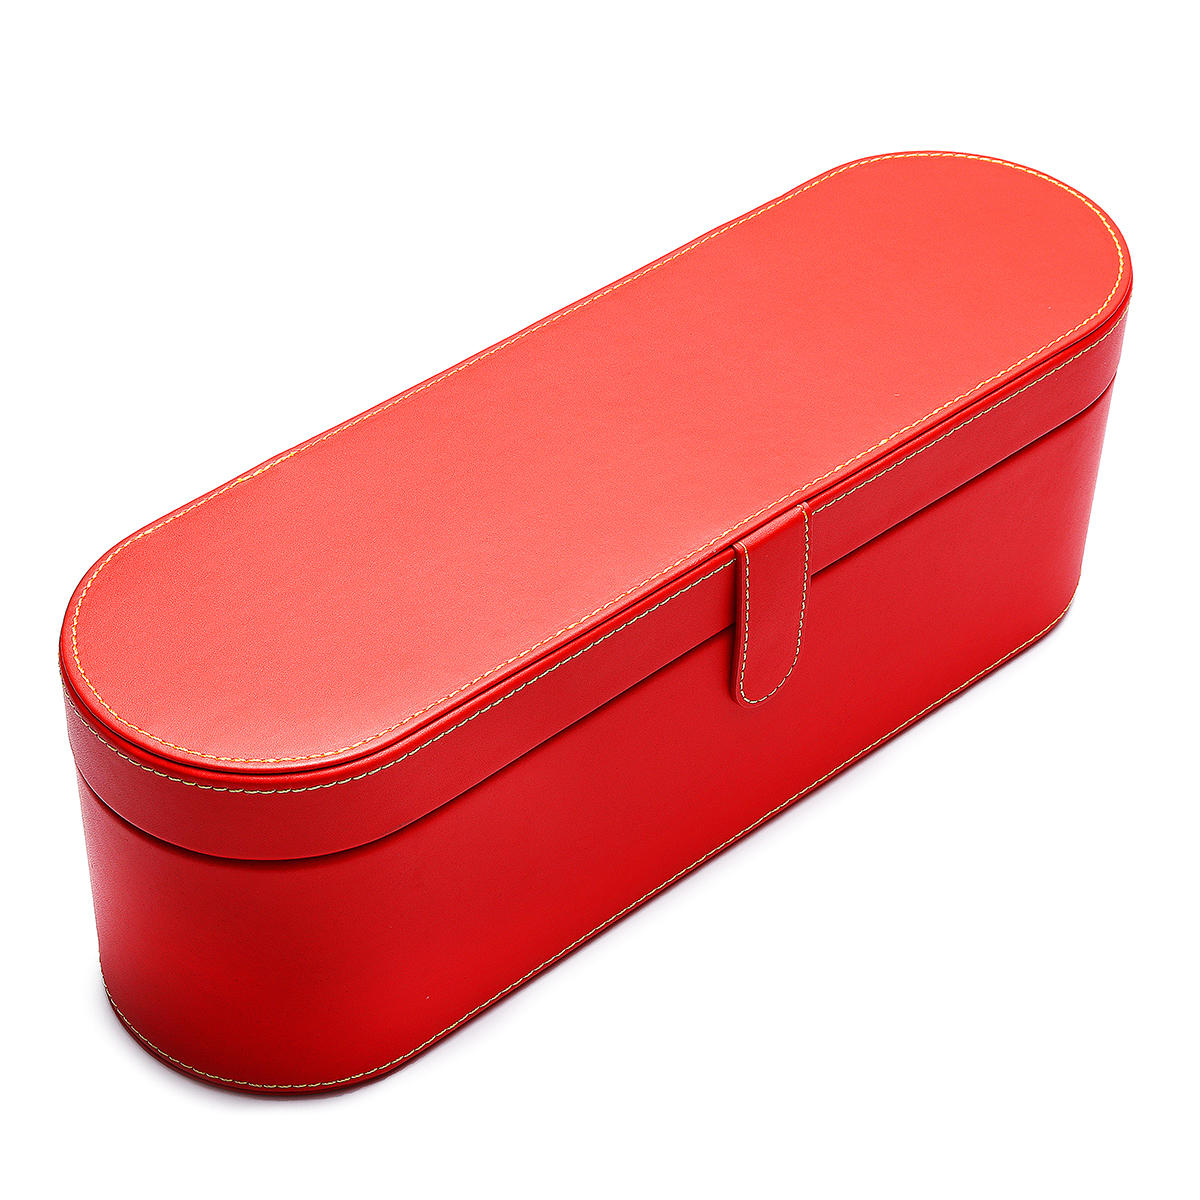 PU Leather Fashion Carry Storage Case Box For Dyson HD01 Supersonic Hair Dryer